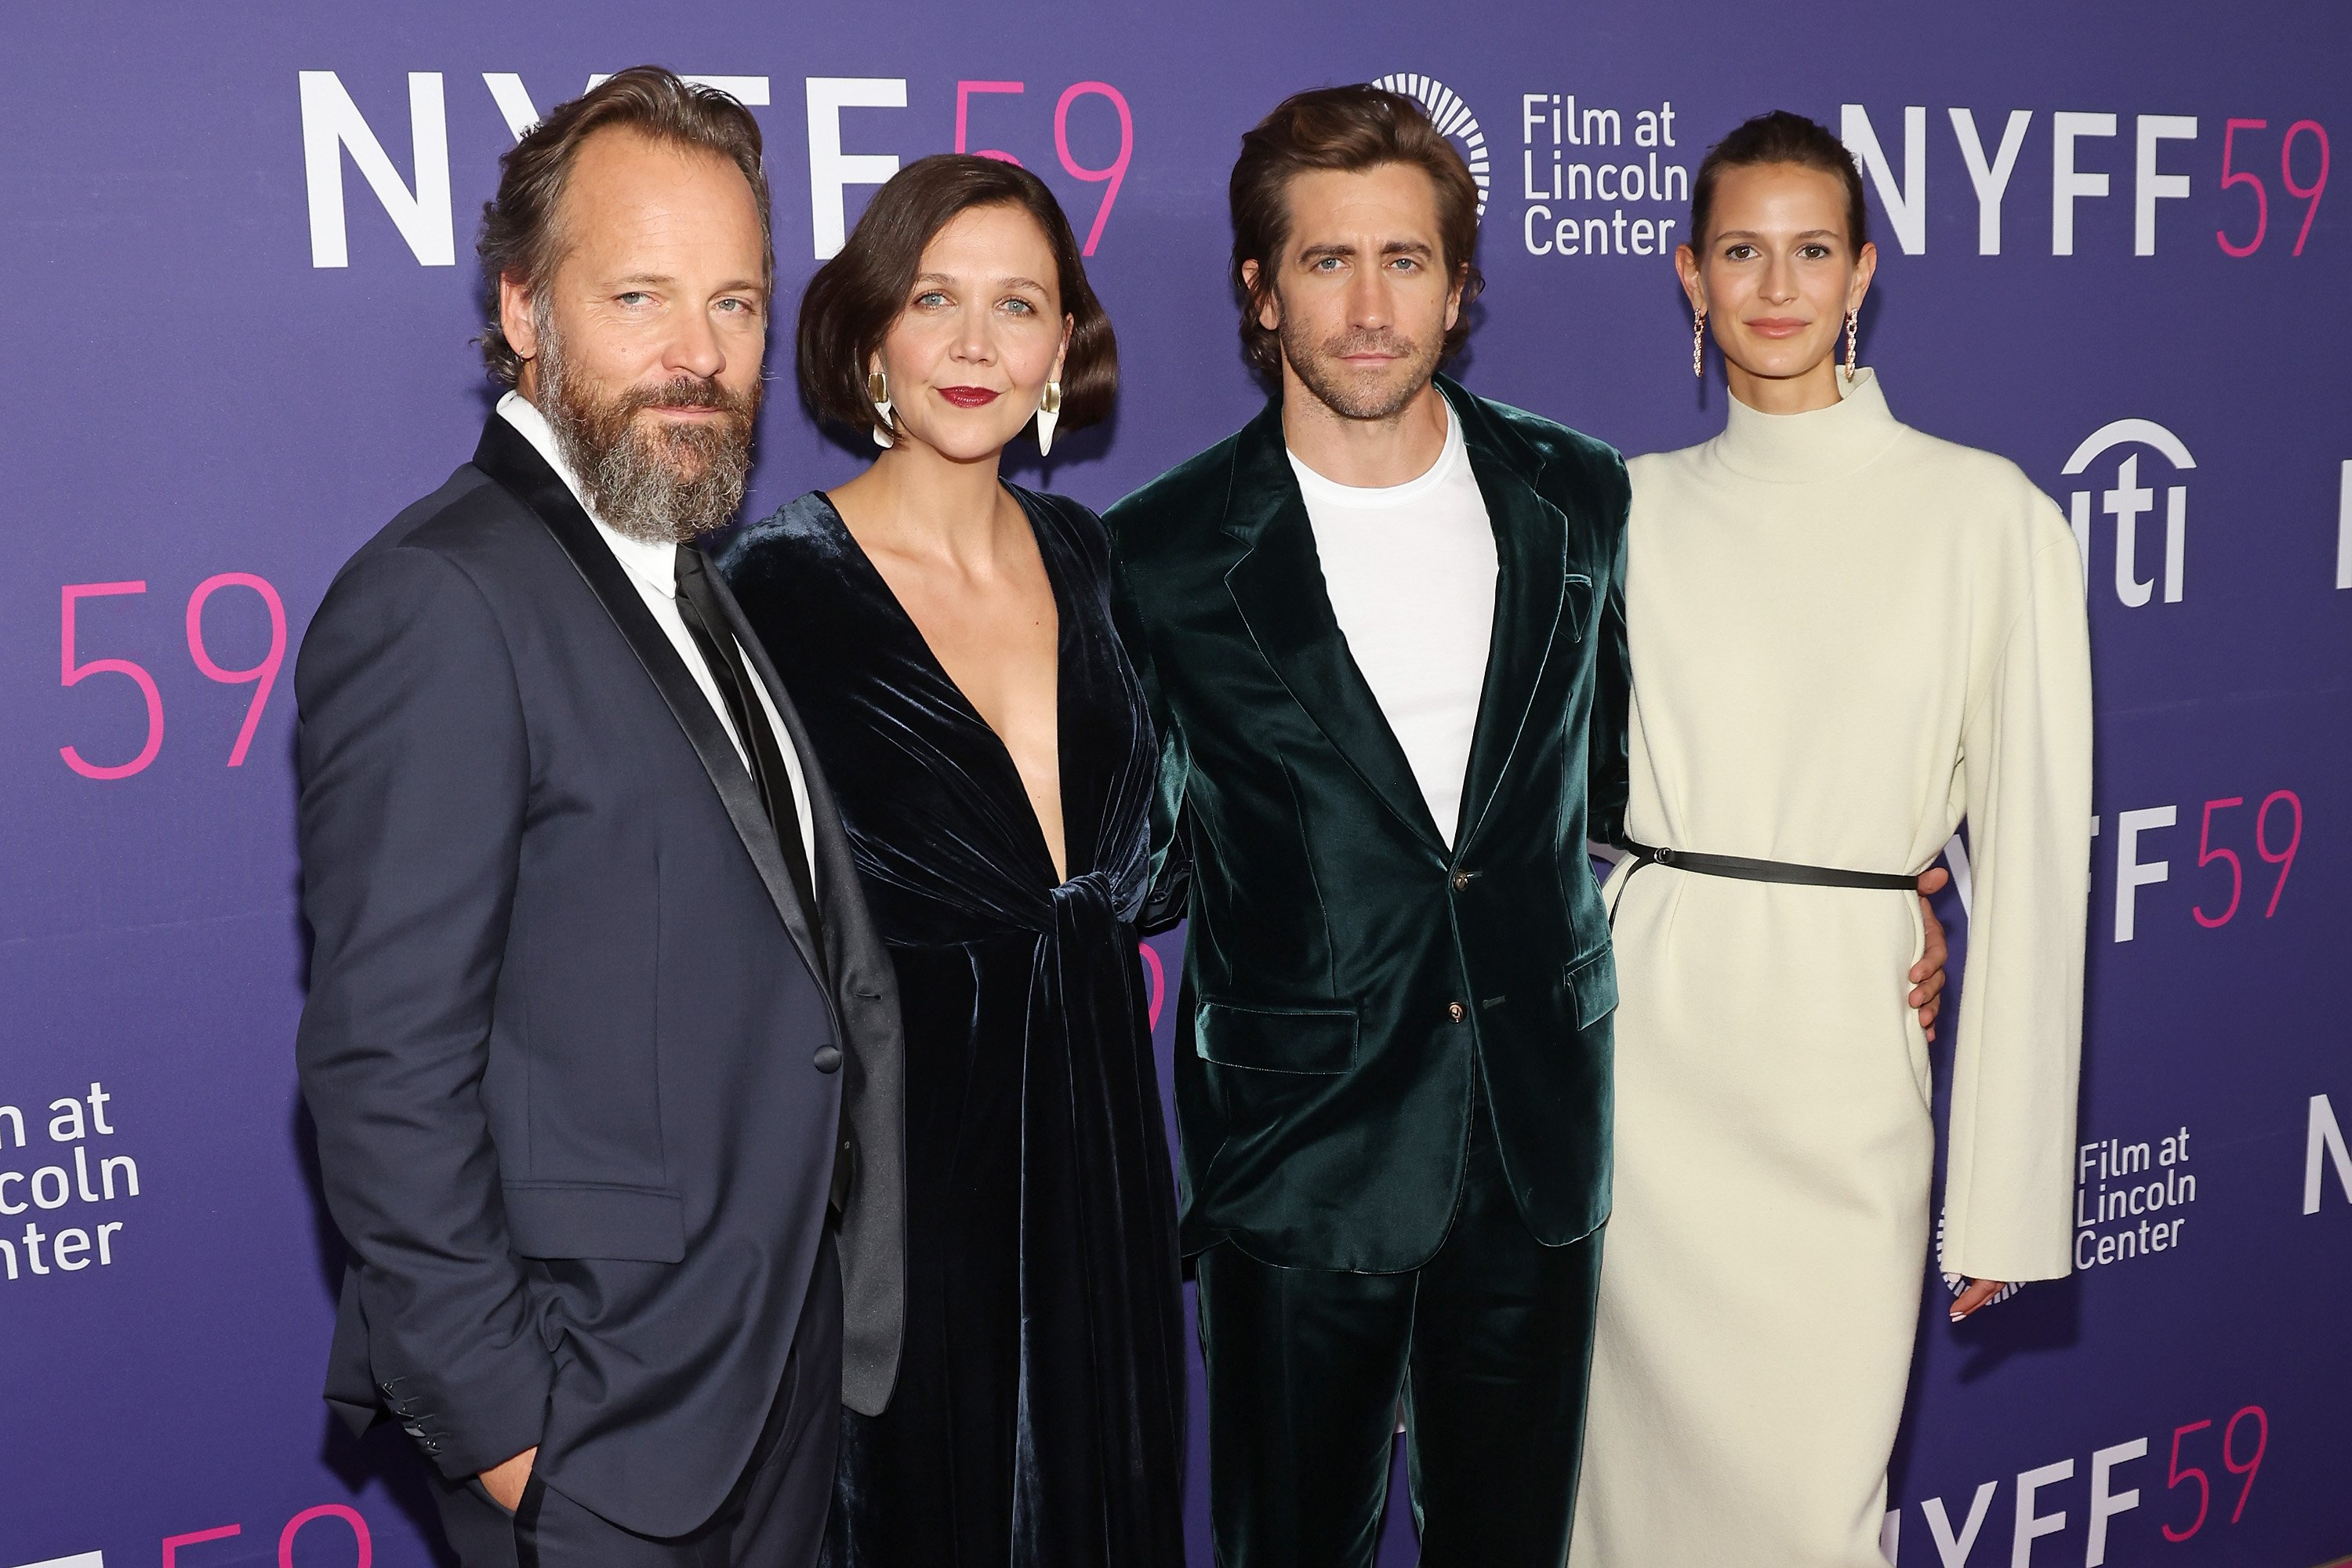 """Peter Sarsgaard, Maggie Gyllenhaal, Jake Gyllenhaal, and Jeanne Cadieu pictured at the premiere of """"The Lost Daughter,"""" 2021, New York City.   Photo: Getty Images"""